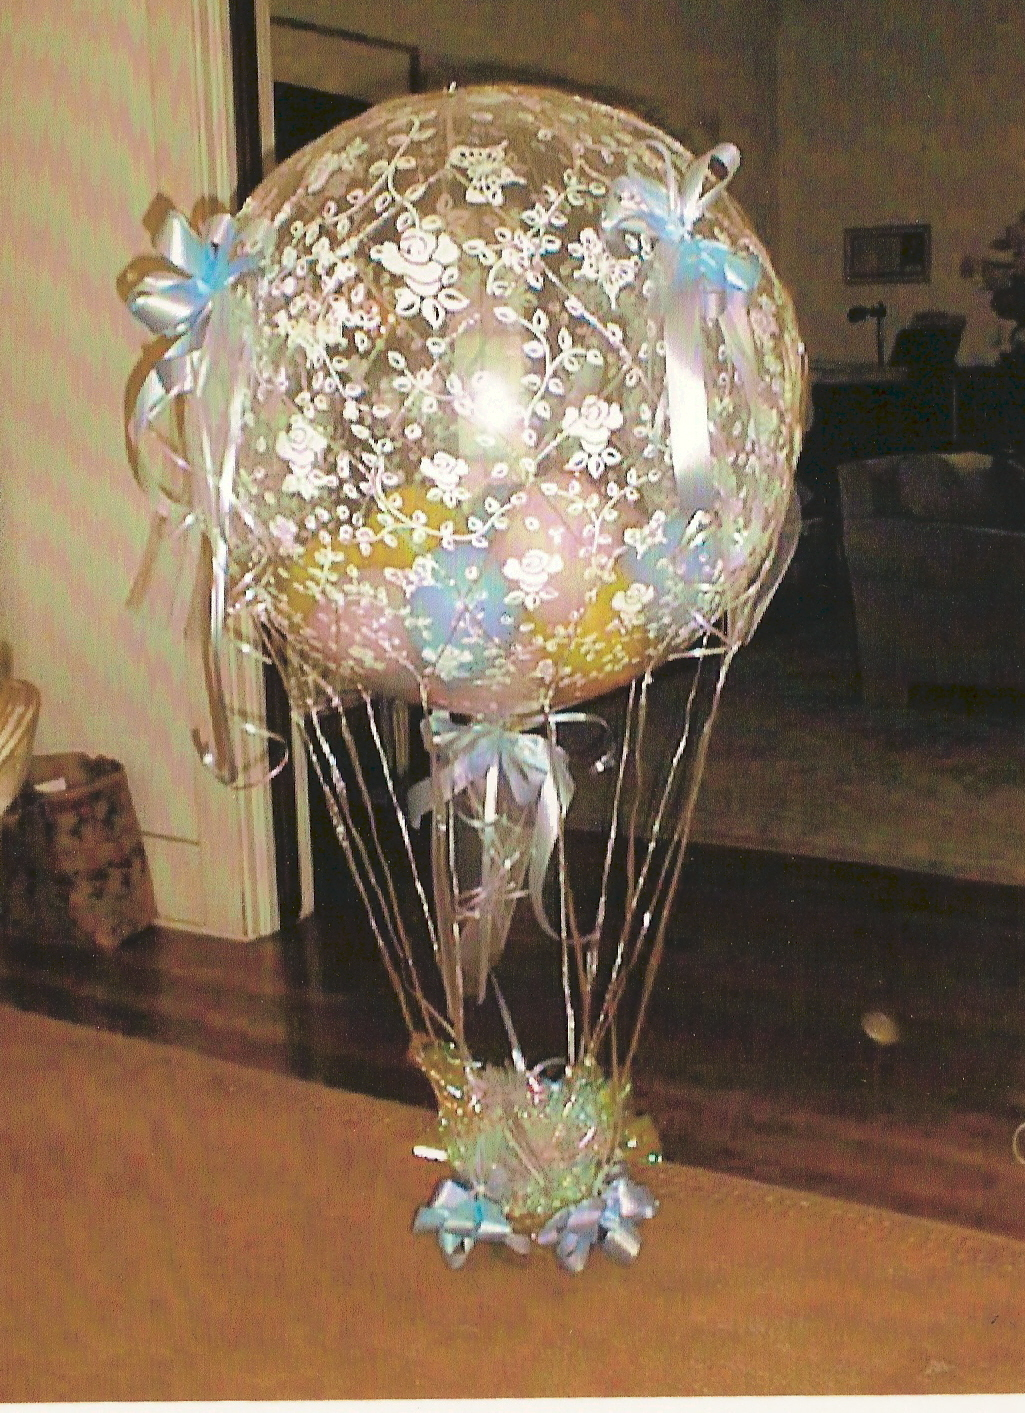 HOT AIR BALLOON MADE WITH A 3 FT. HELIUM BALLOON